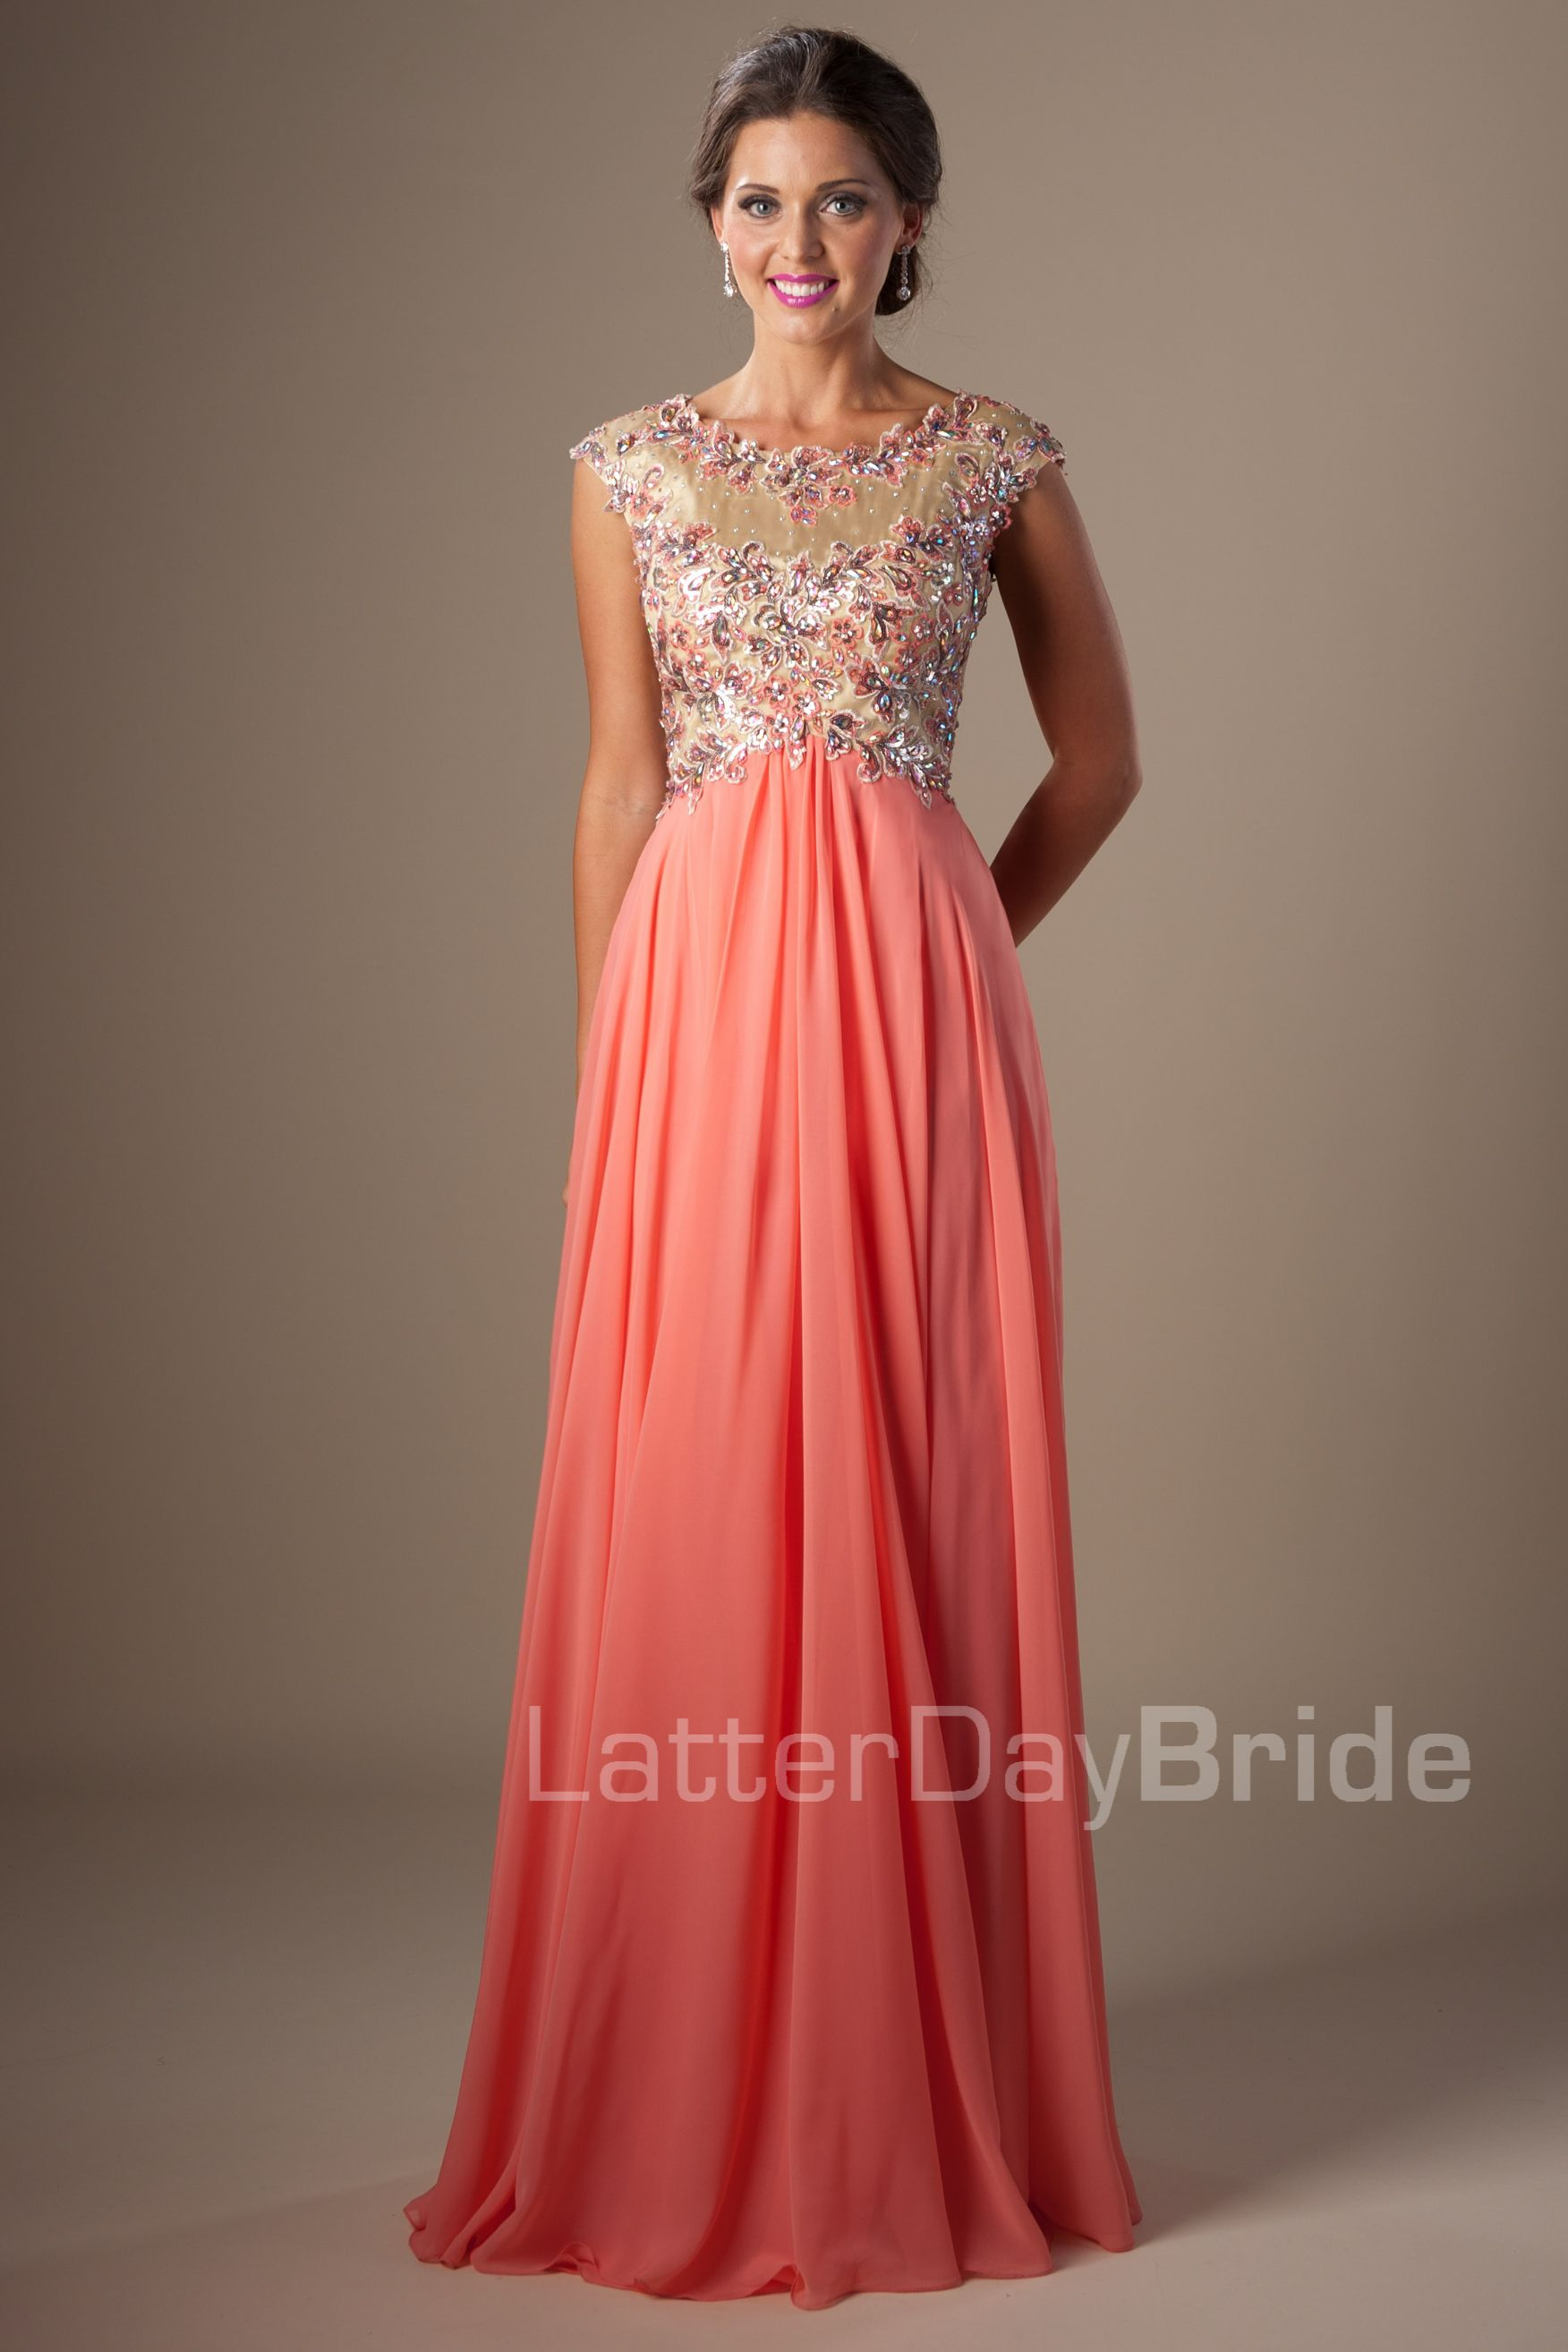 Modest Prom Dresses : Felicity | Fancy | Pinterest | Modest formal ...